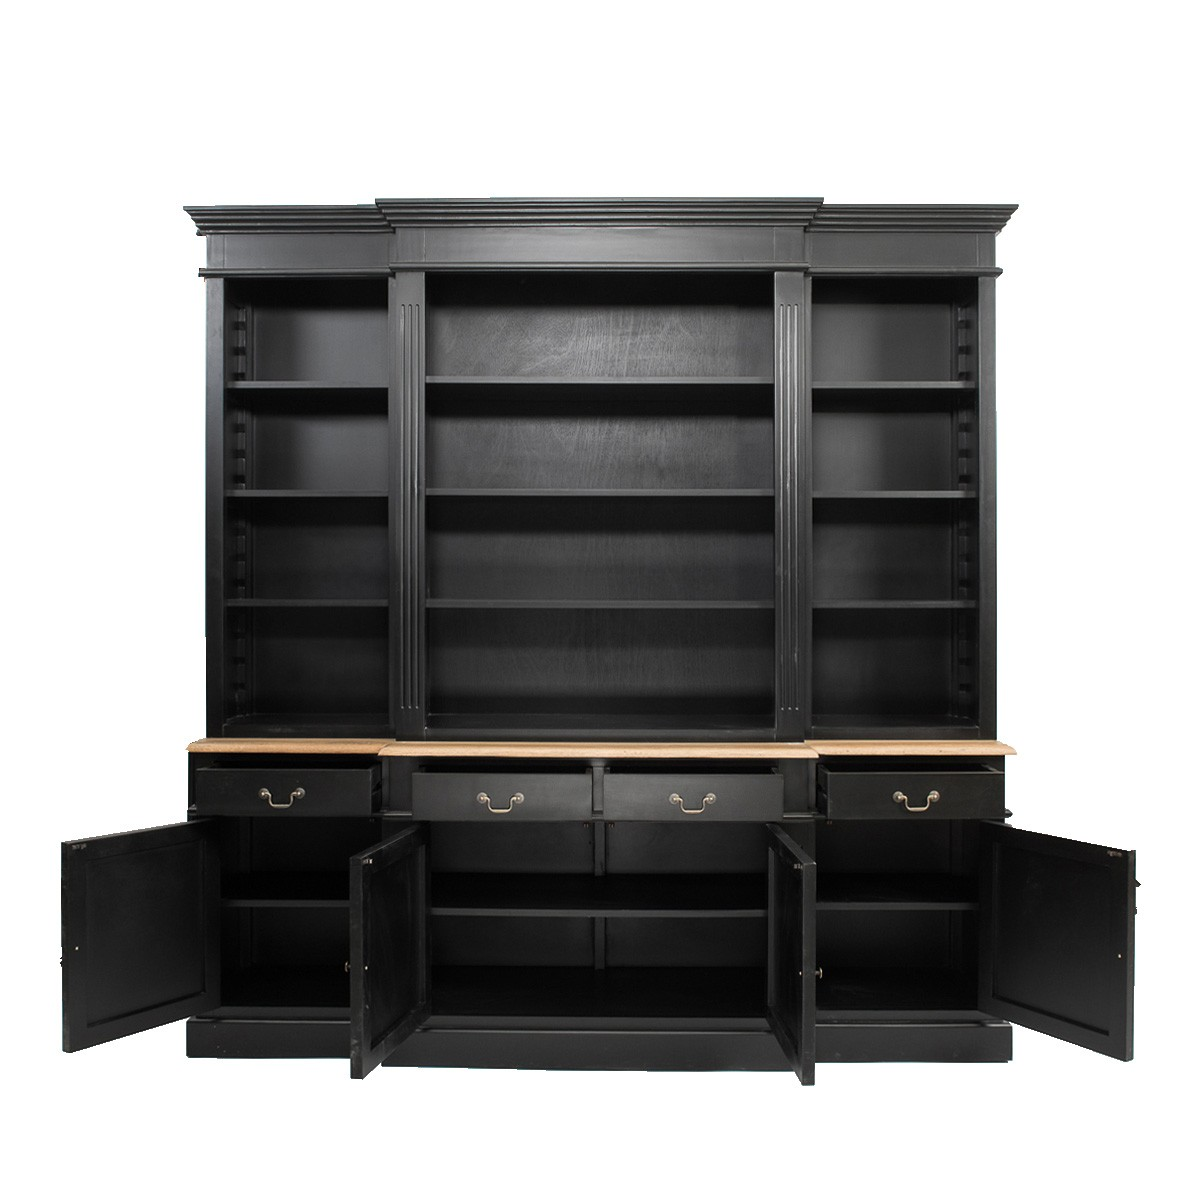 Hamptons Style Black Buffet and Hutch Sideboard Bookcase Cabinet with Drawers Wholesales Direct